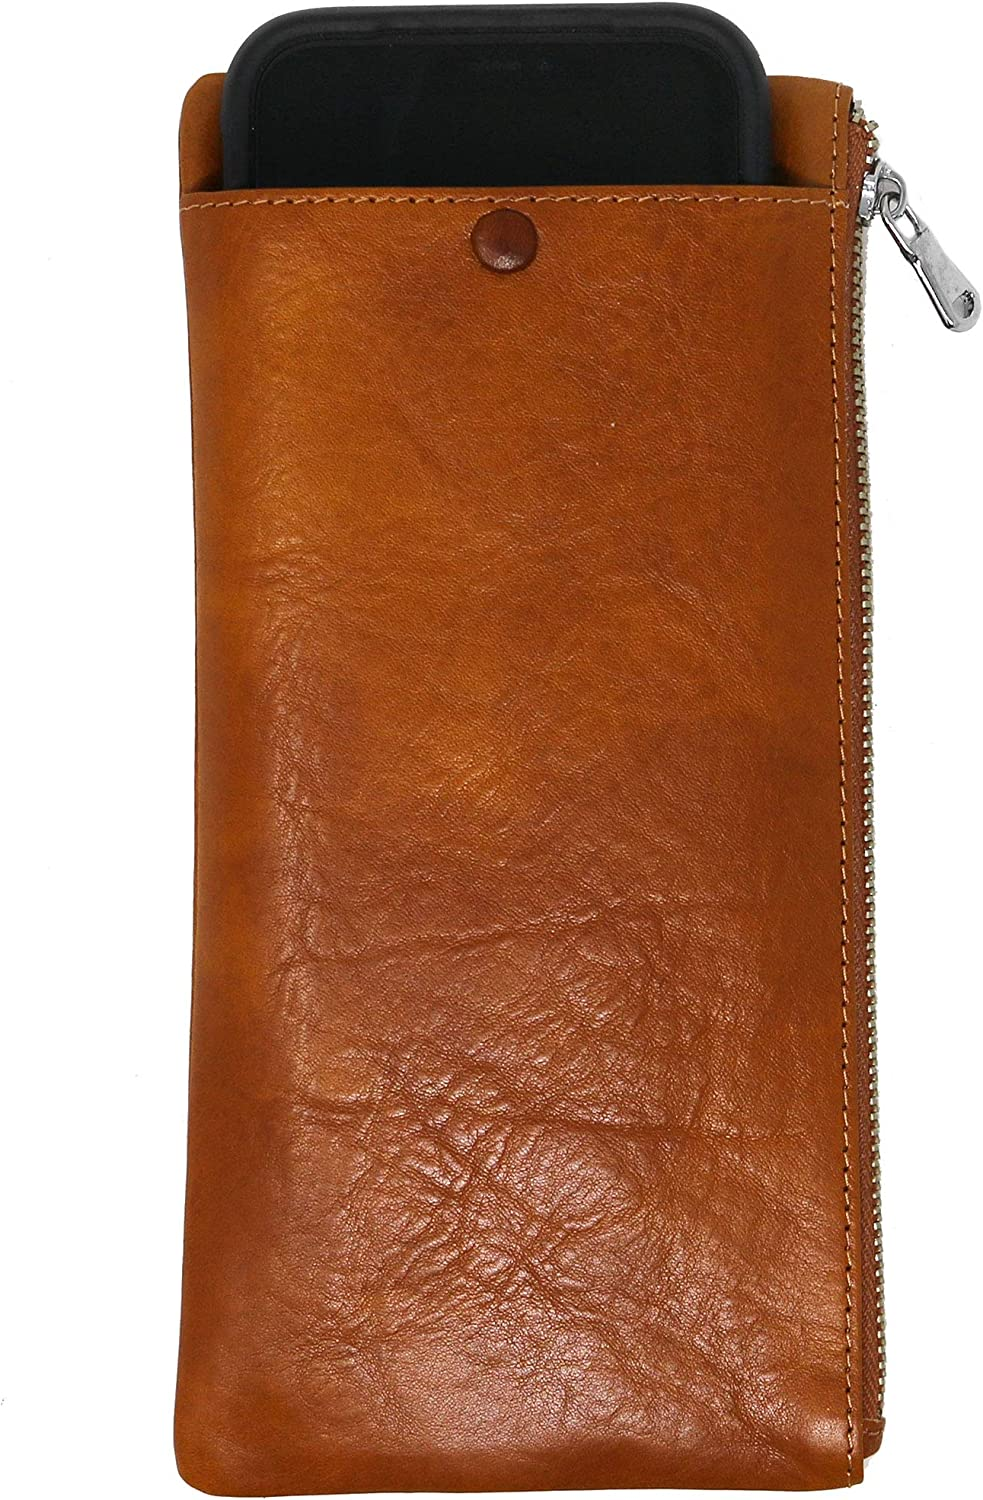 Roma Leather Smartphone Oakland Mall Wallet Los Angeles Mall Zip